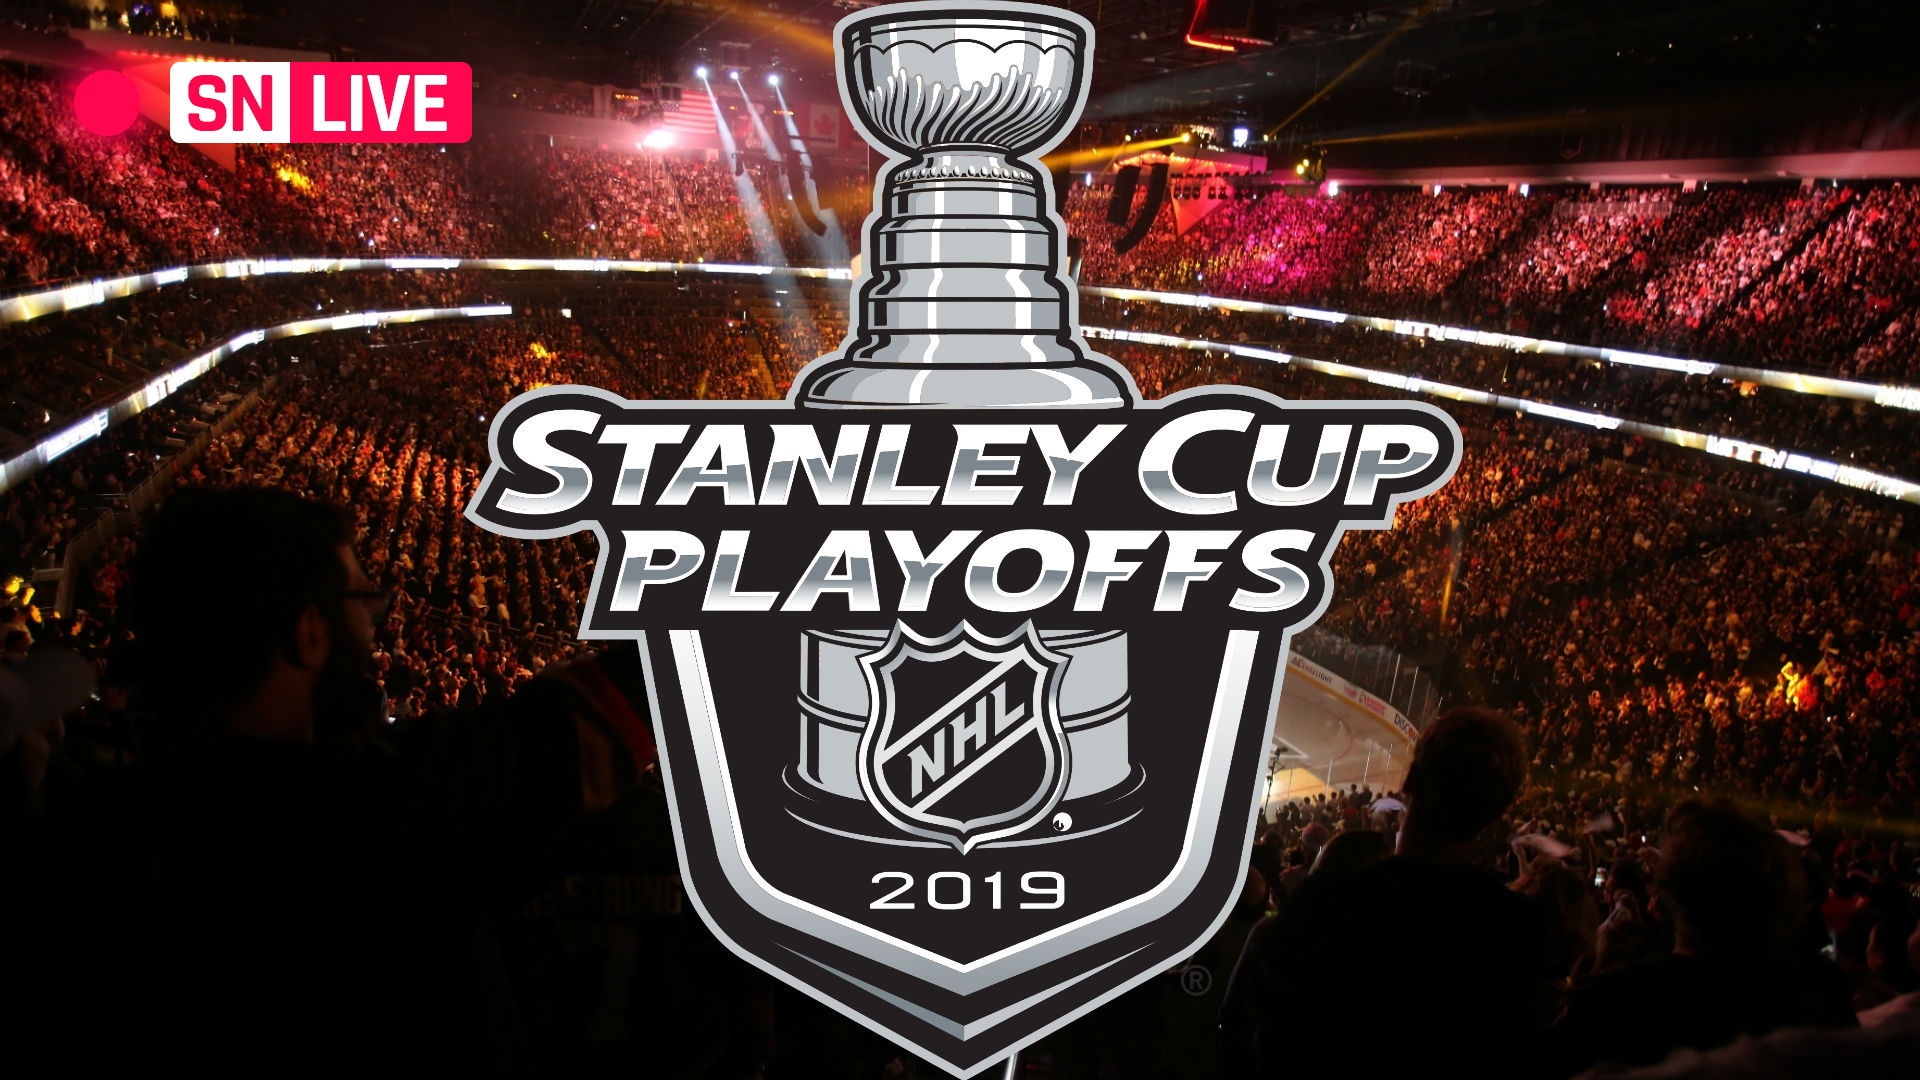 Nhl Playoffs Today 2019 Live Score Tv Schedule Game 7 Updates